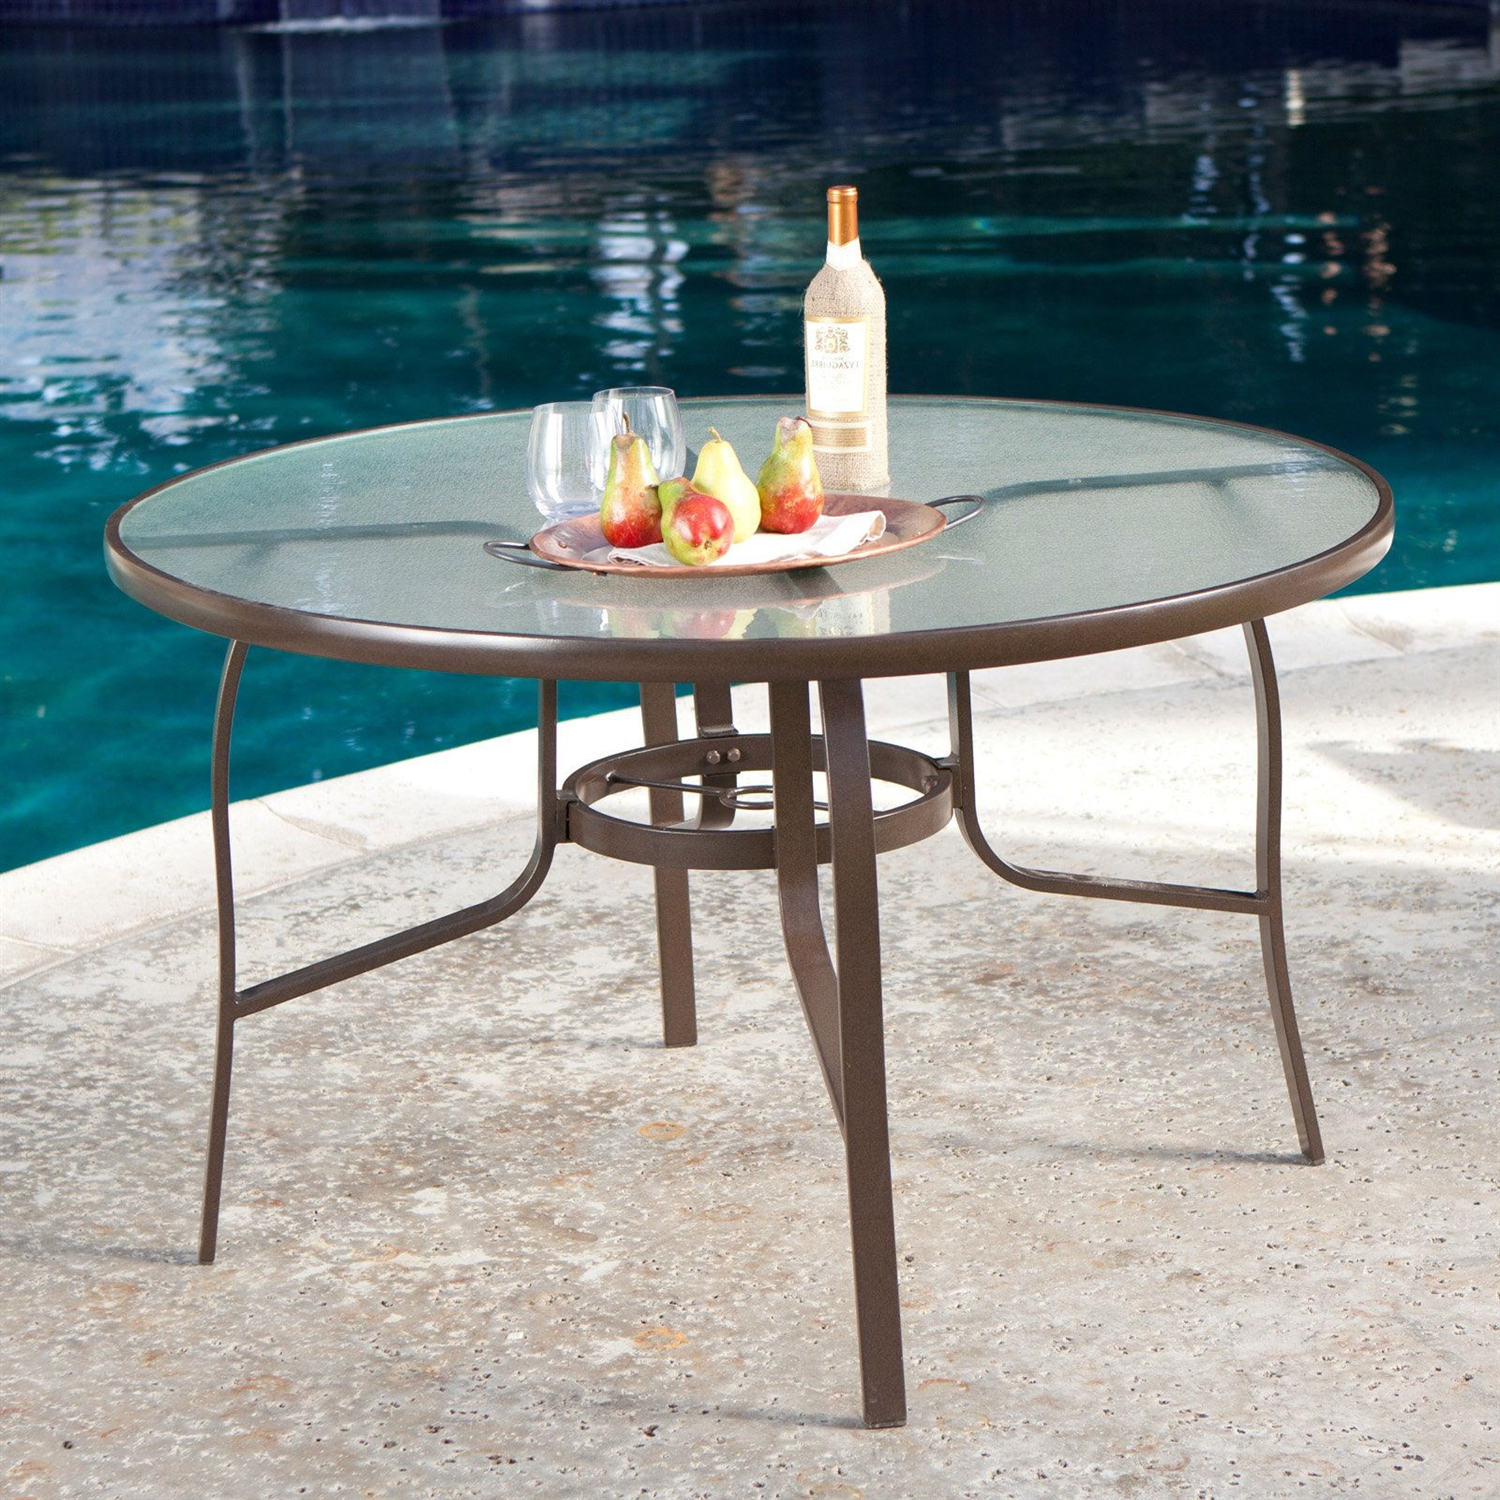 9 inch Round Glass Top Outdoor Patio Dining Table with Umbrella ...